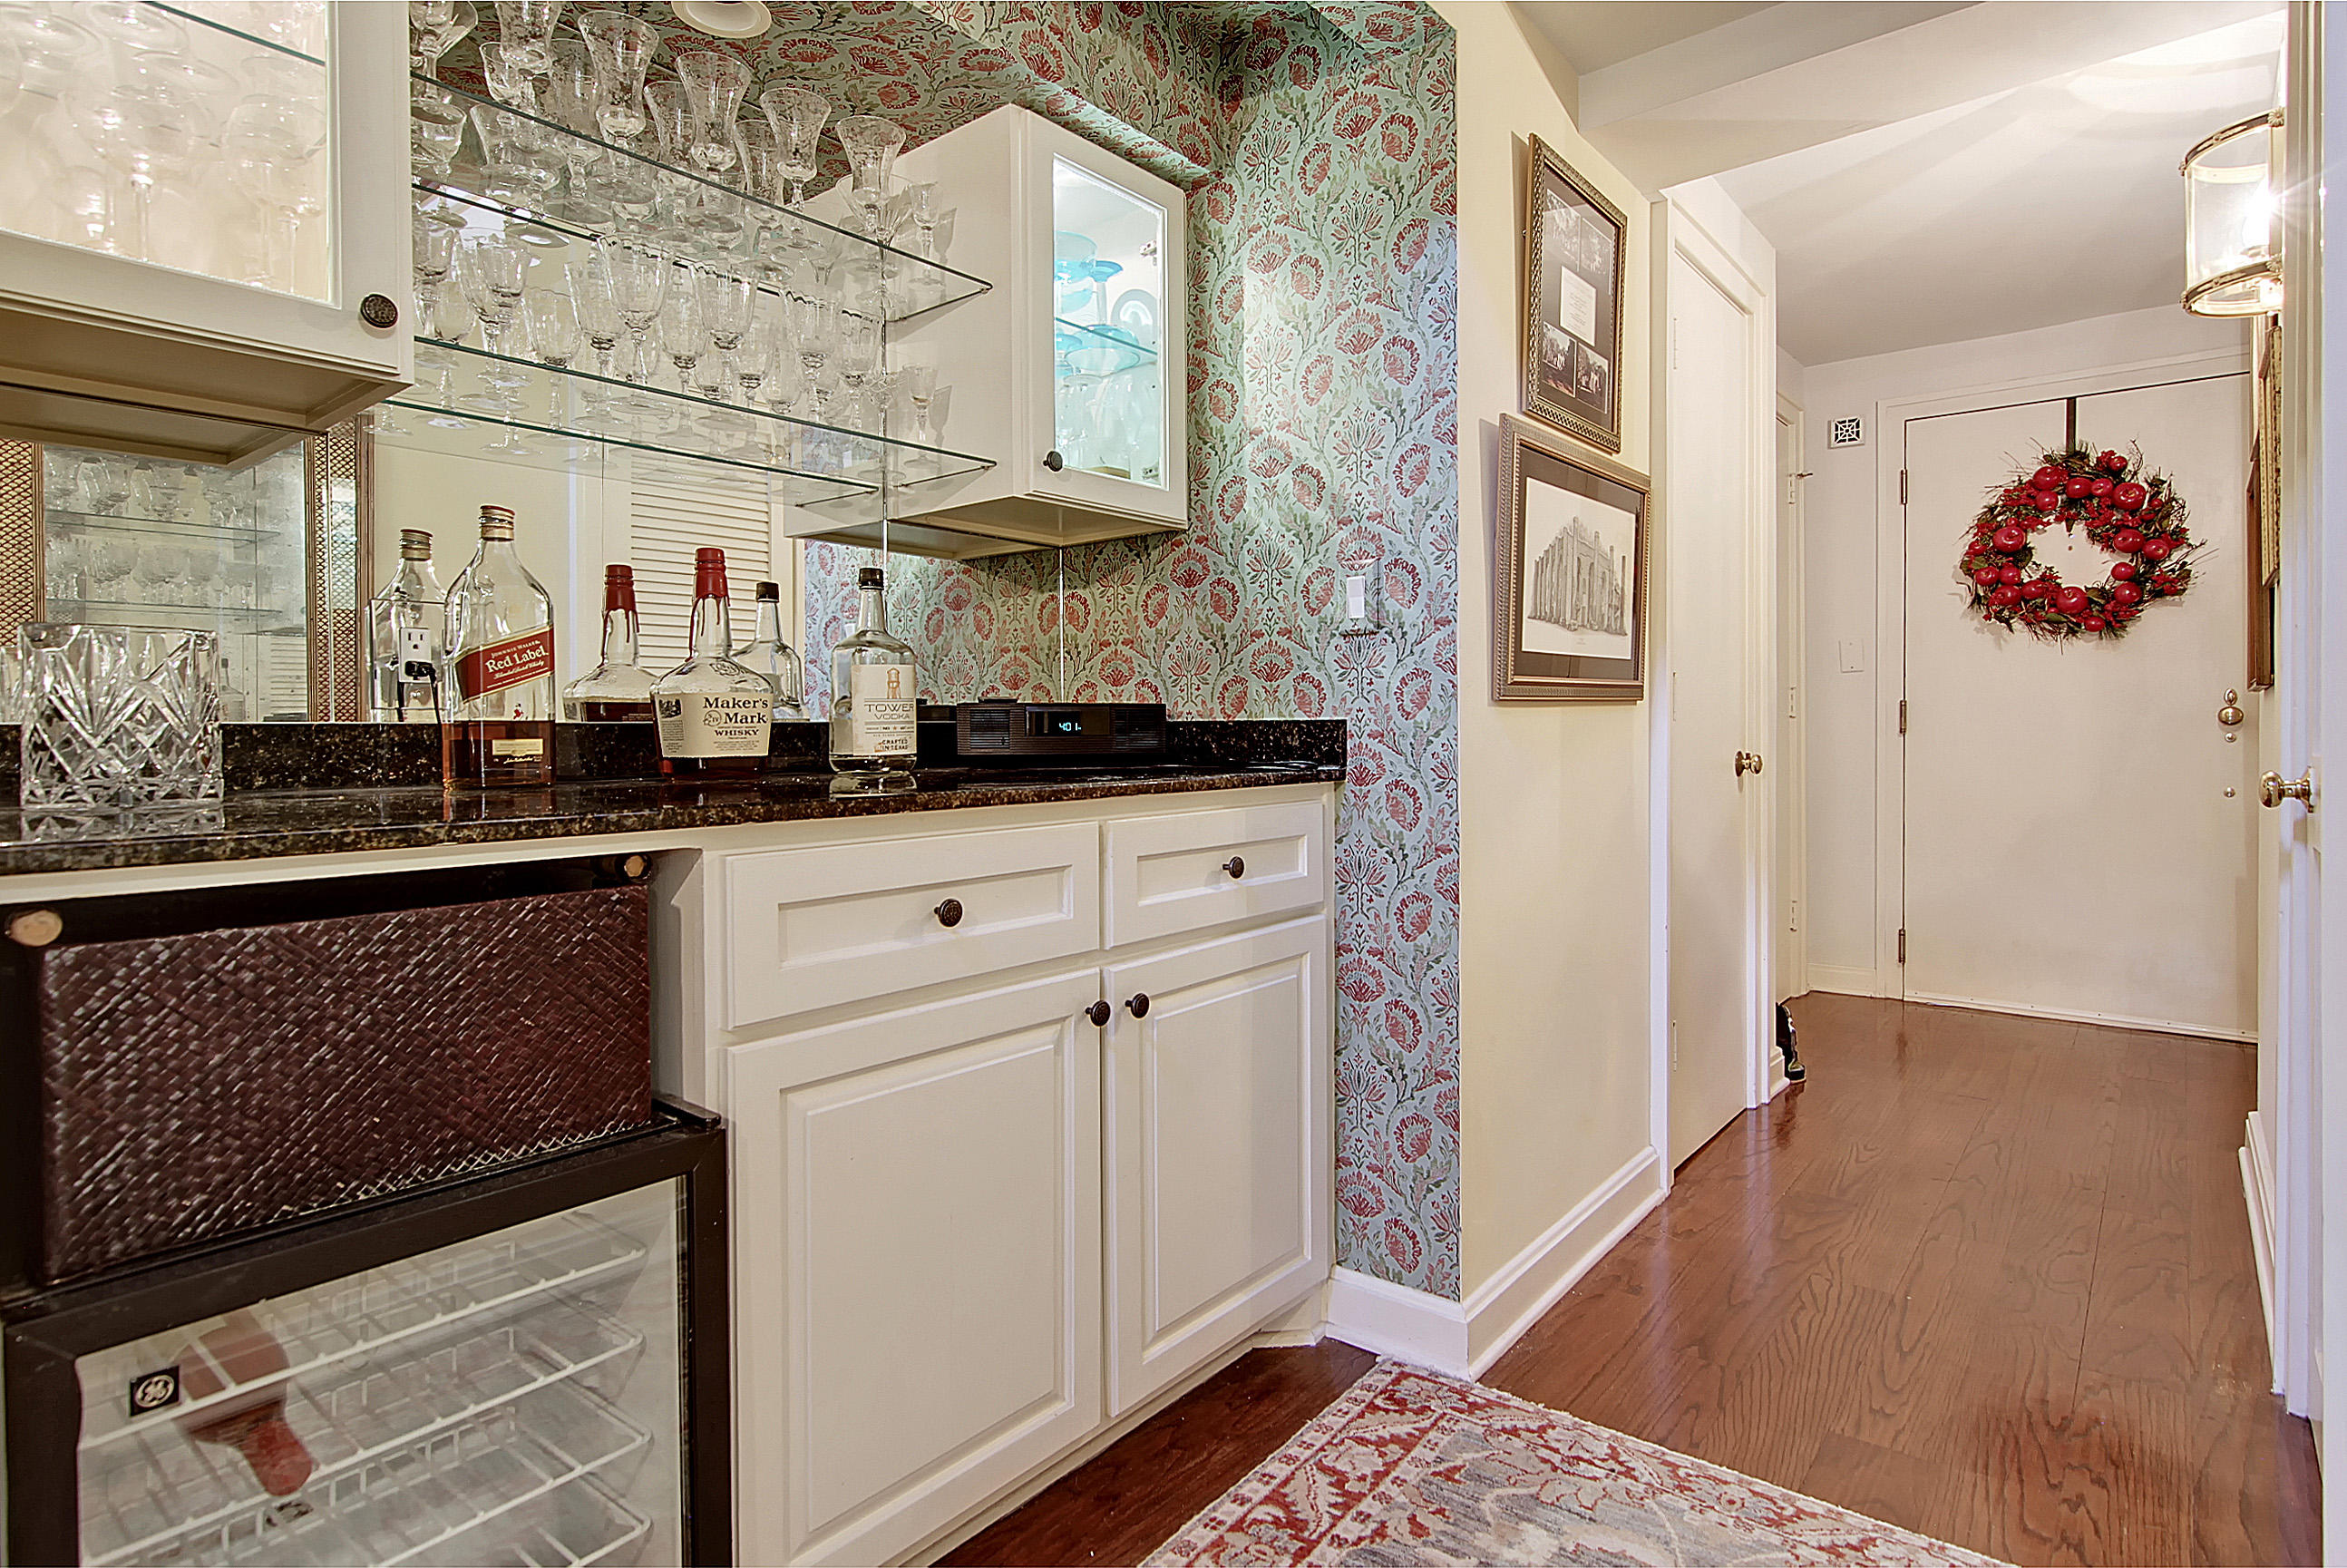 South of Broad Homes For Sale - 109 East Bay, Charleston, SC - 3